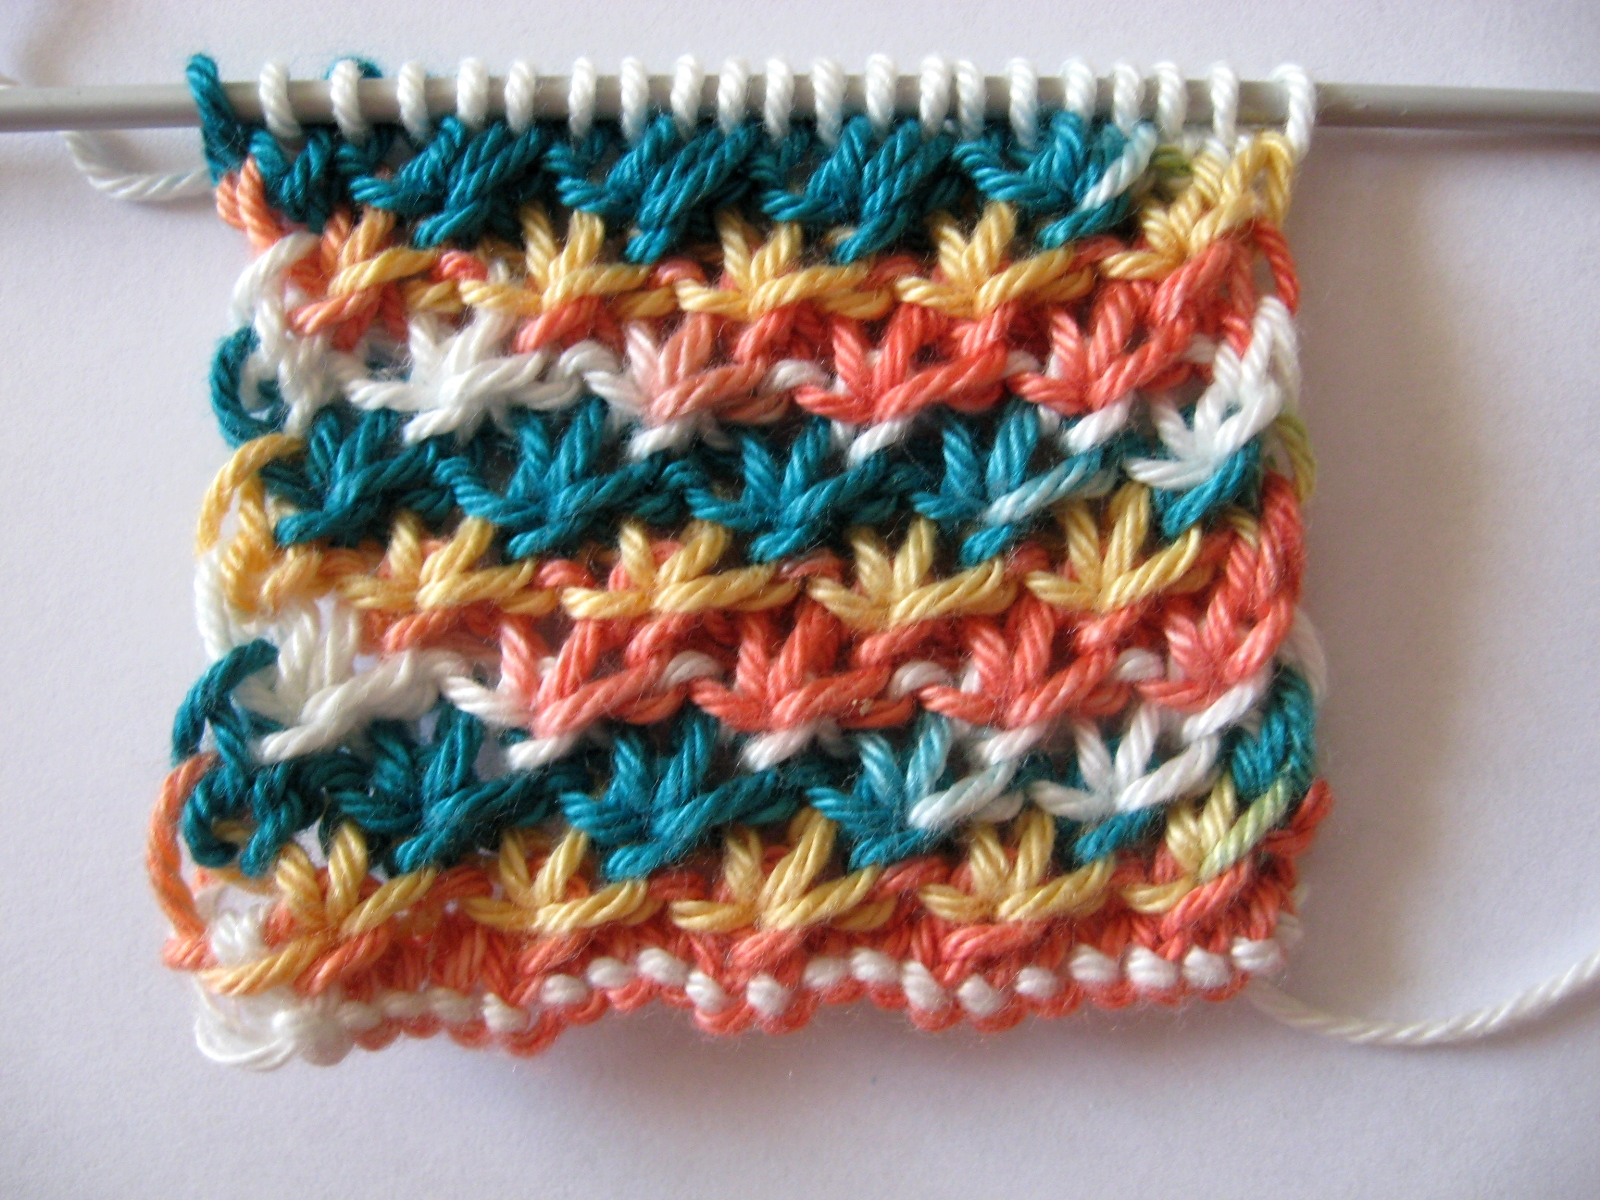 Crochet Knit Stitch Instructions : CROCHET ENCYCLOPEDIA KNITTING PATTERN STITCH Crochet Patterns